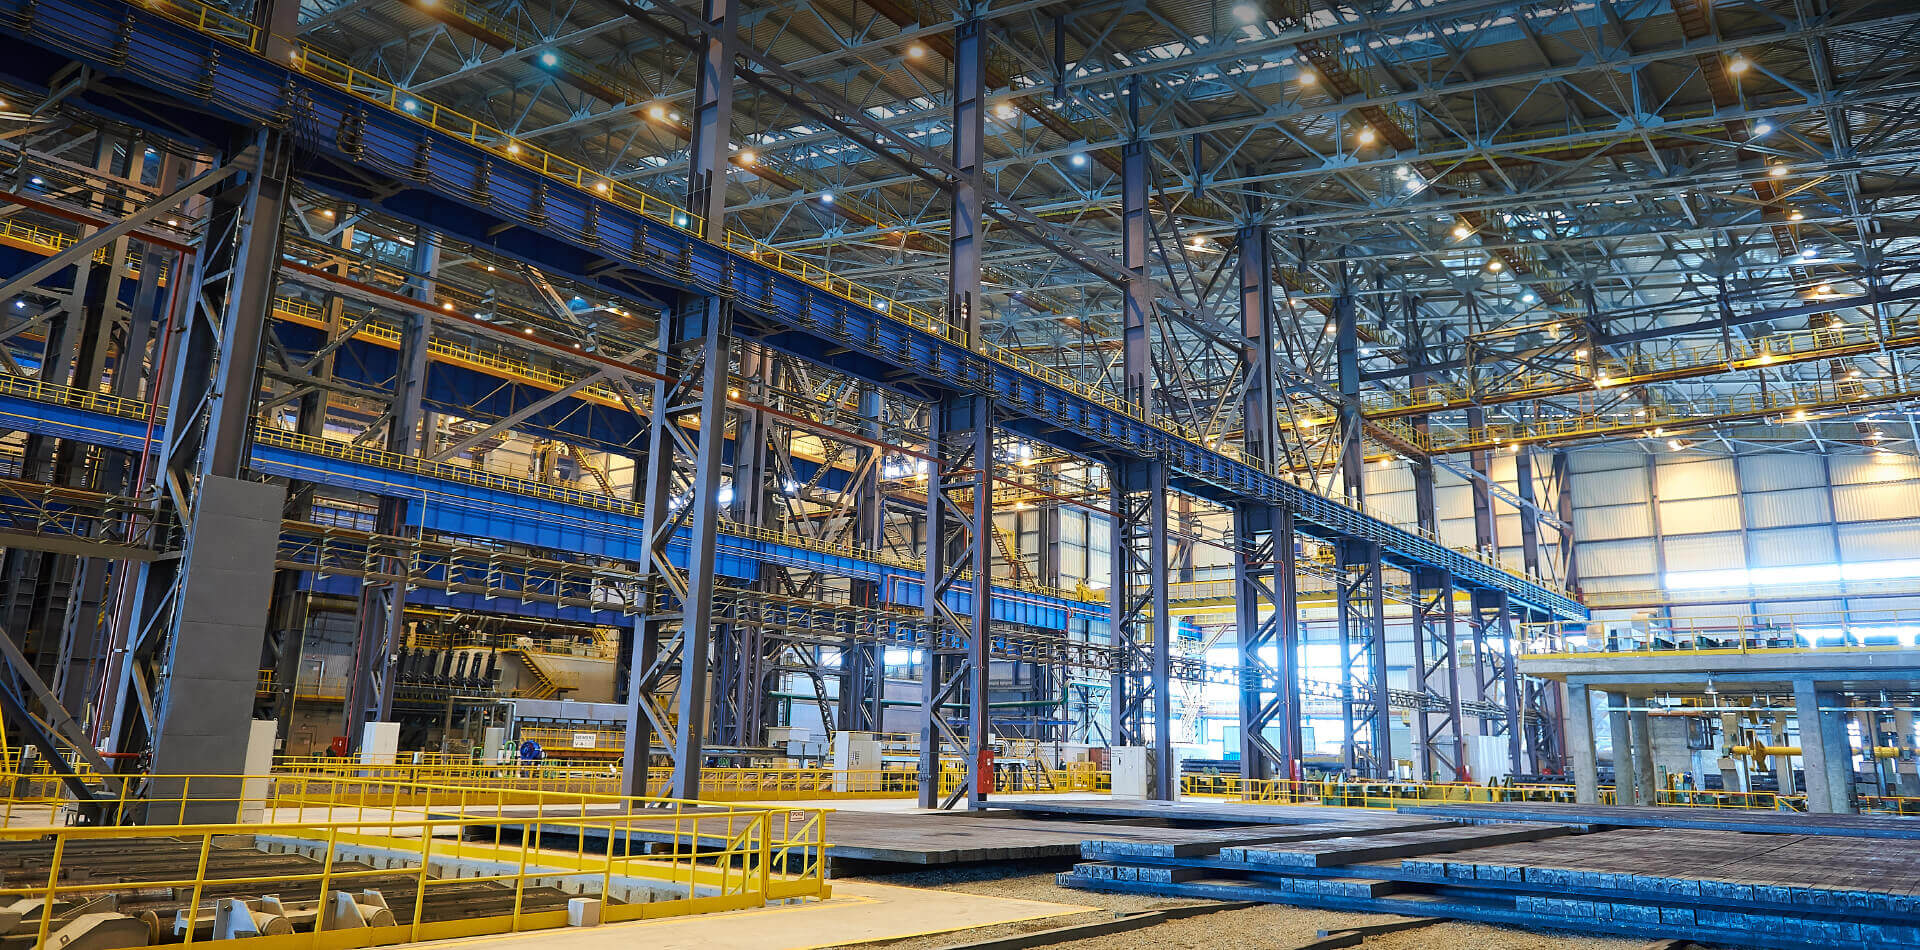 Interior view of a big industrial building